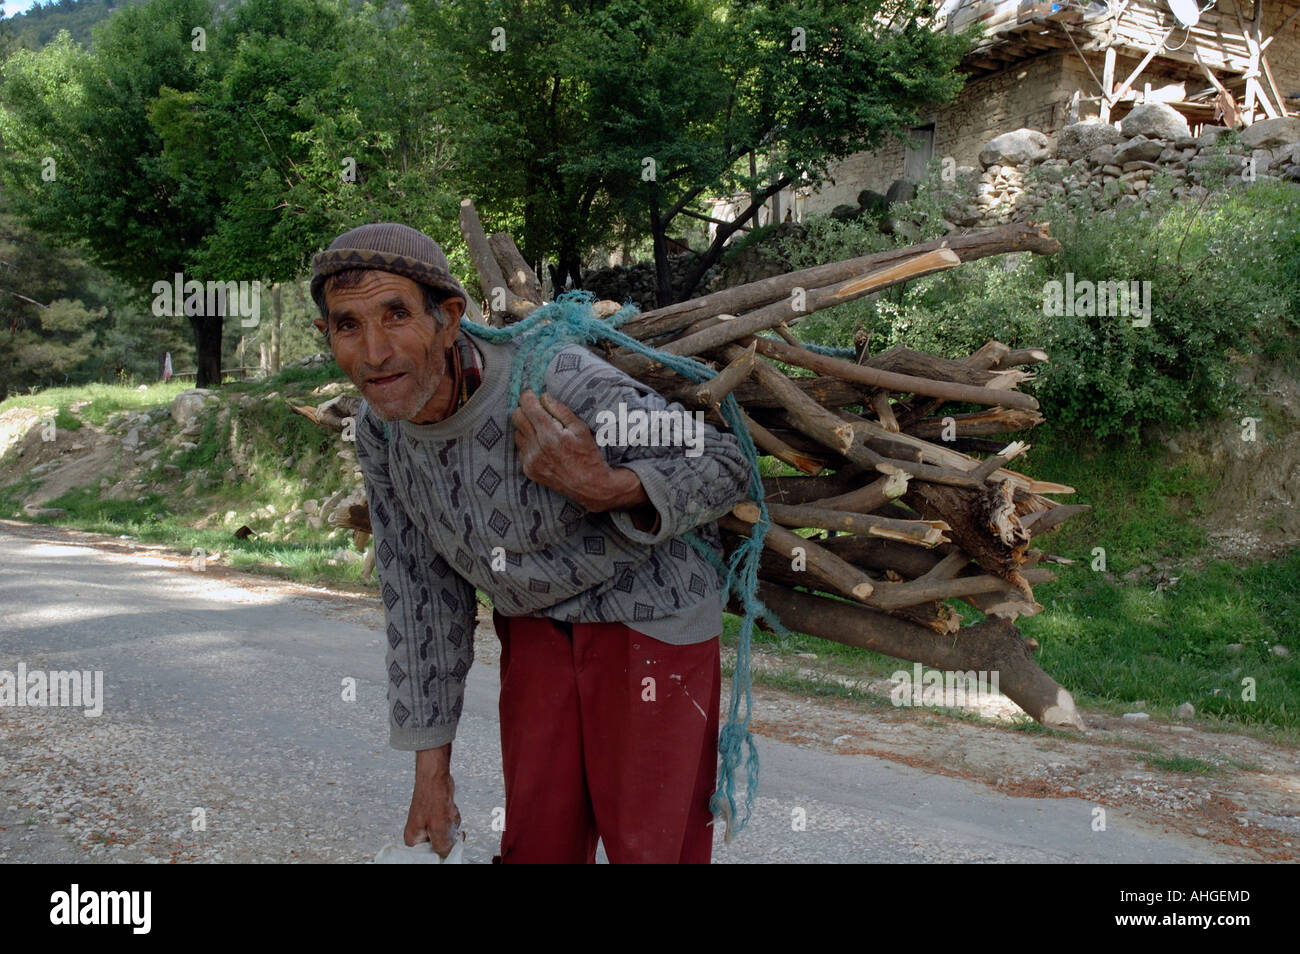 Man carrying heavy load of sticks he has collected for winter fuel. - Stock Image